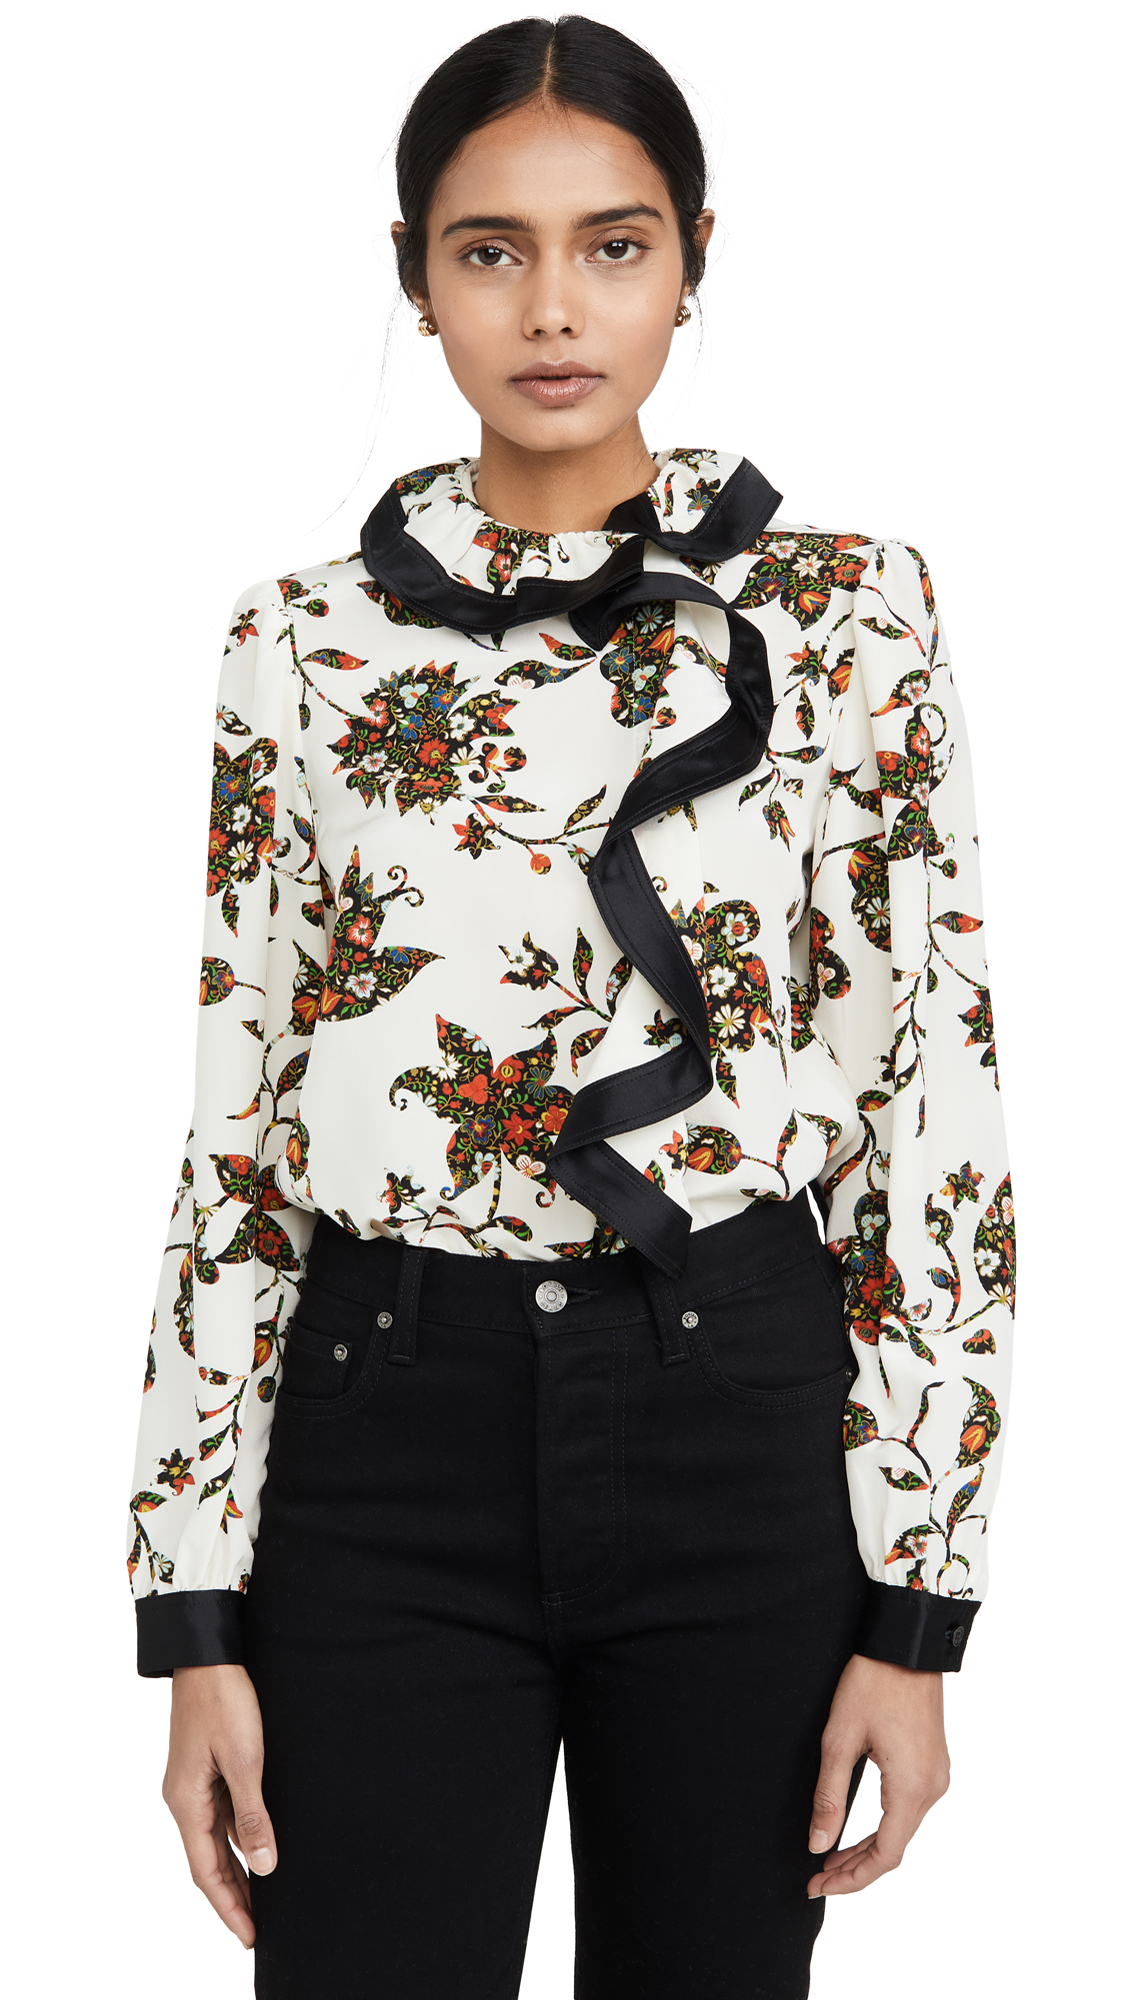 Tory Burch Ruffle Wrap Blouse - 30% Off Sale